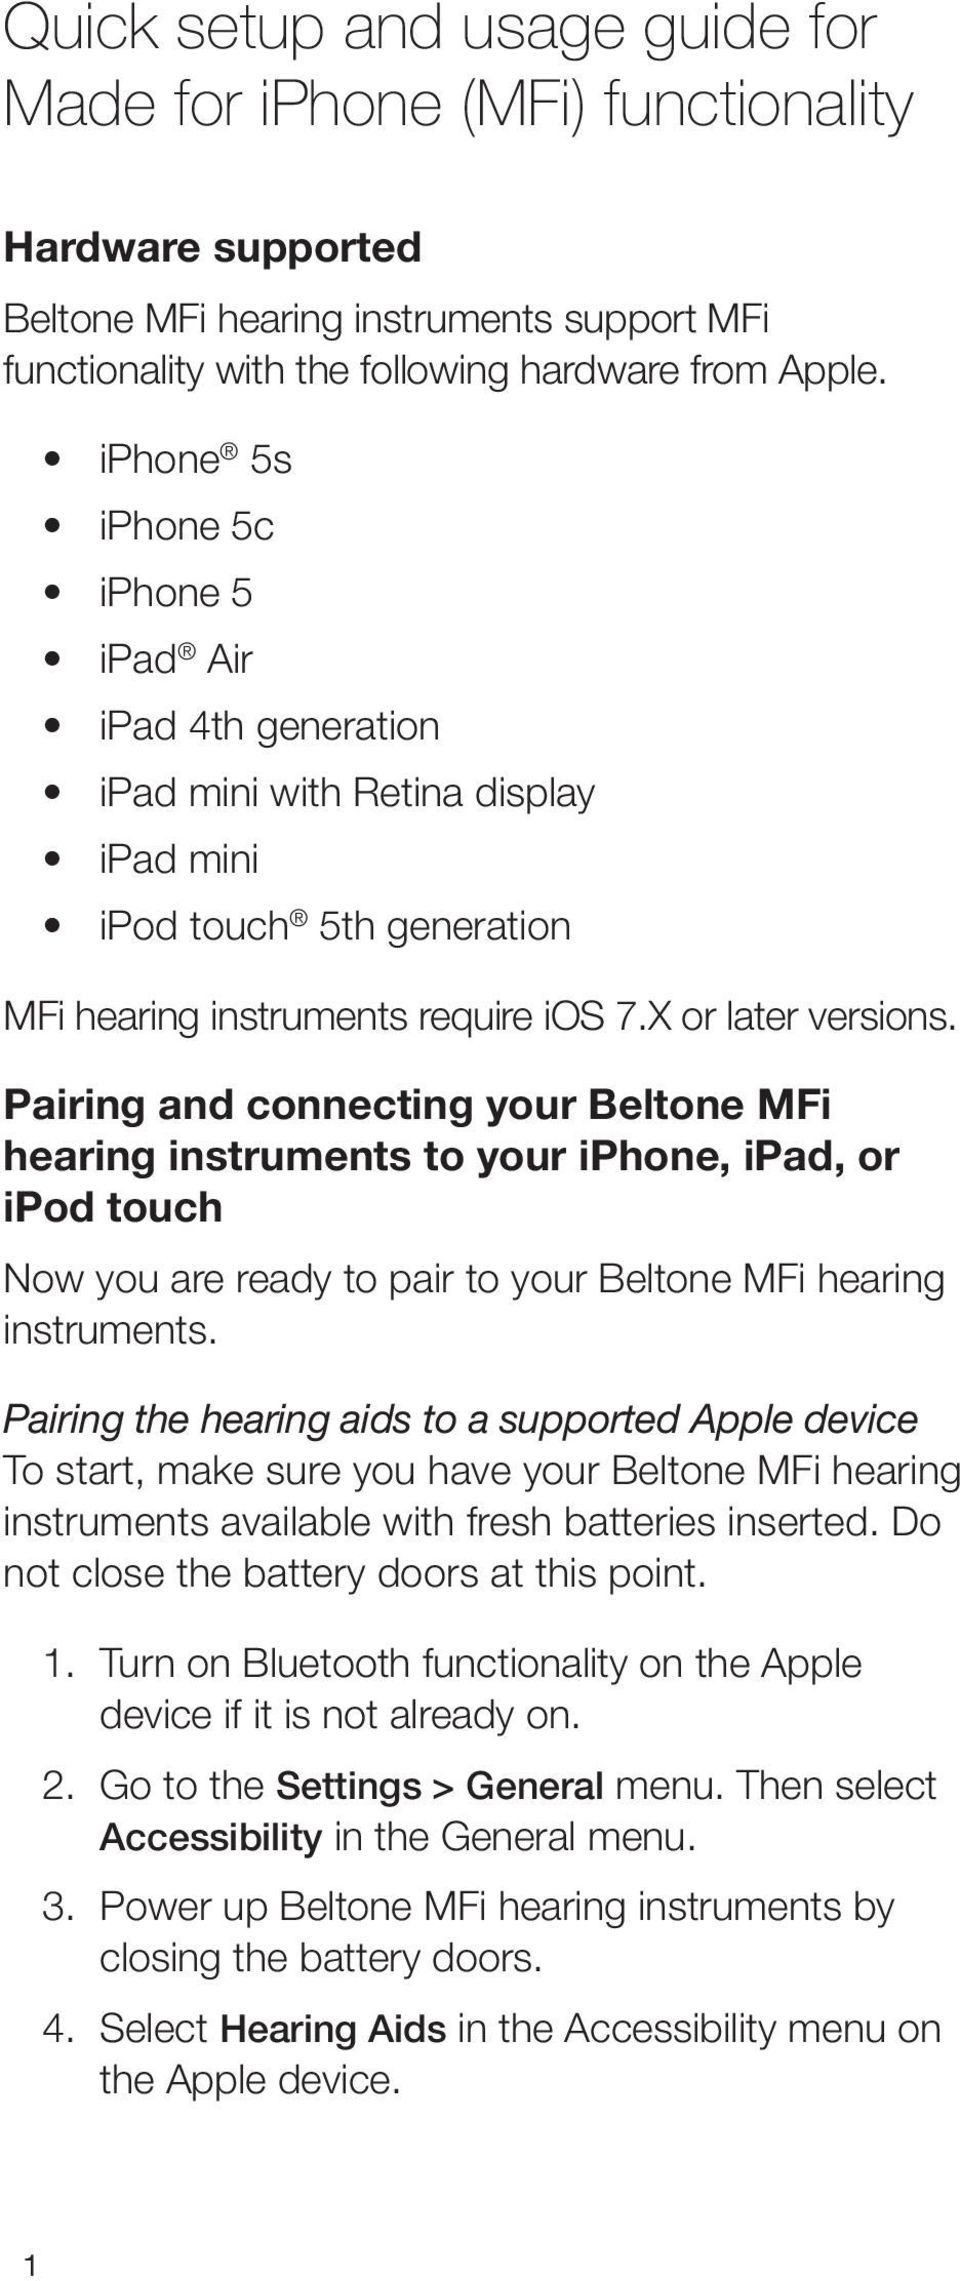 Pairing and connecting your Beltone MFi hearing instruments to your iphone, ipad, or ipod touch Now you are ready to pair to your Beltone MFi hearing instruments.